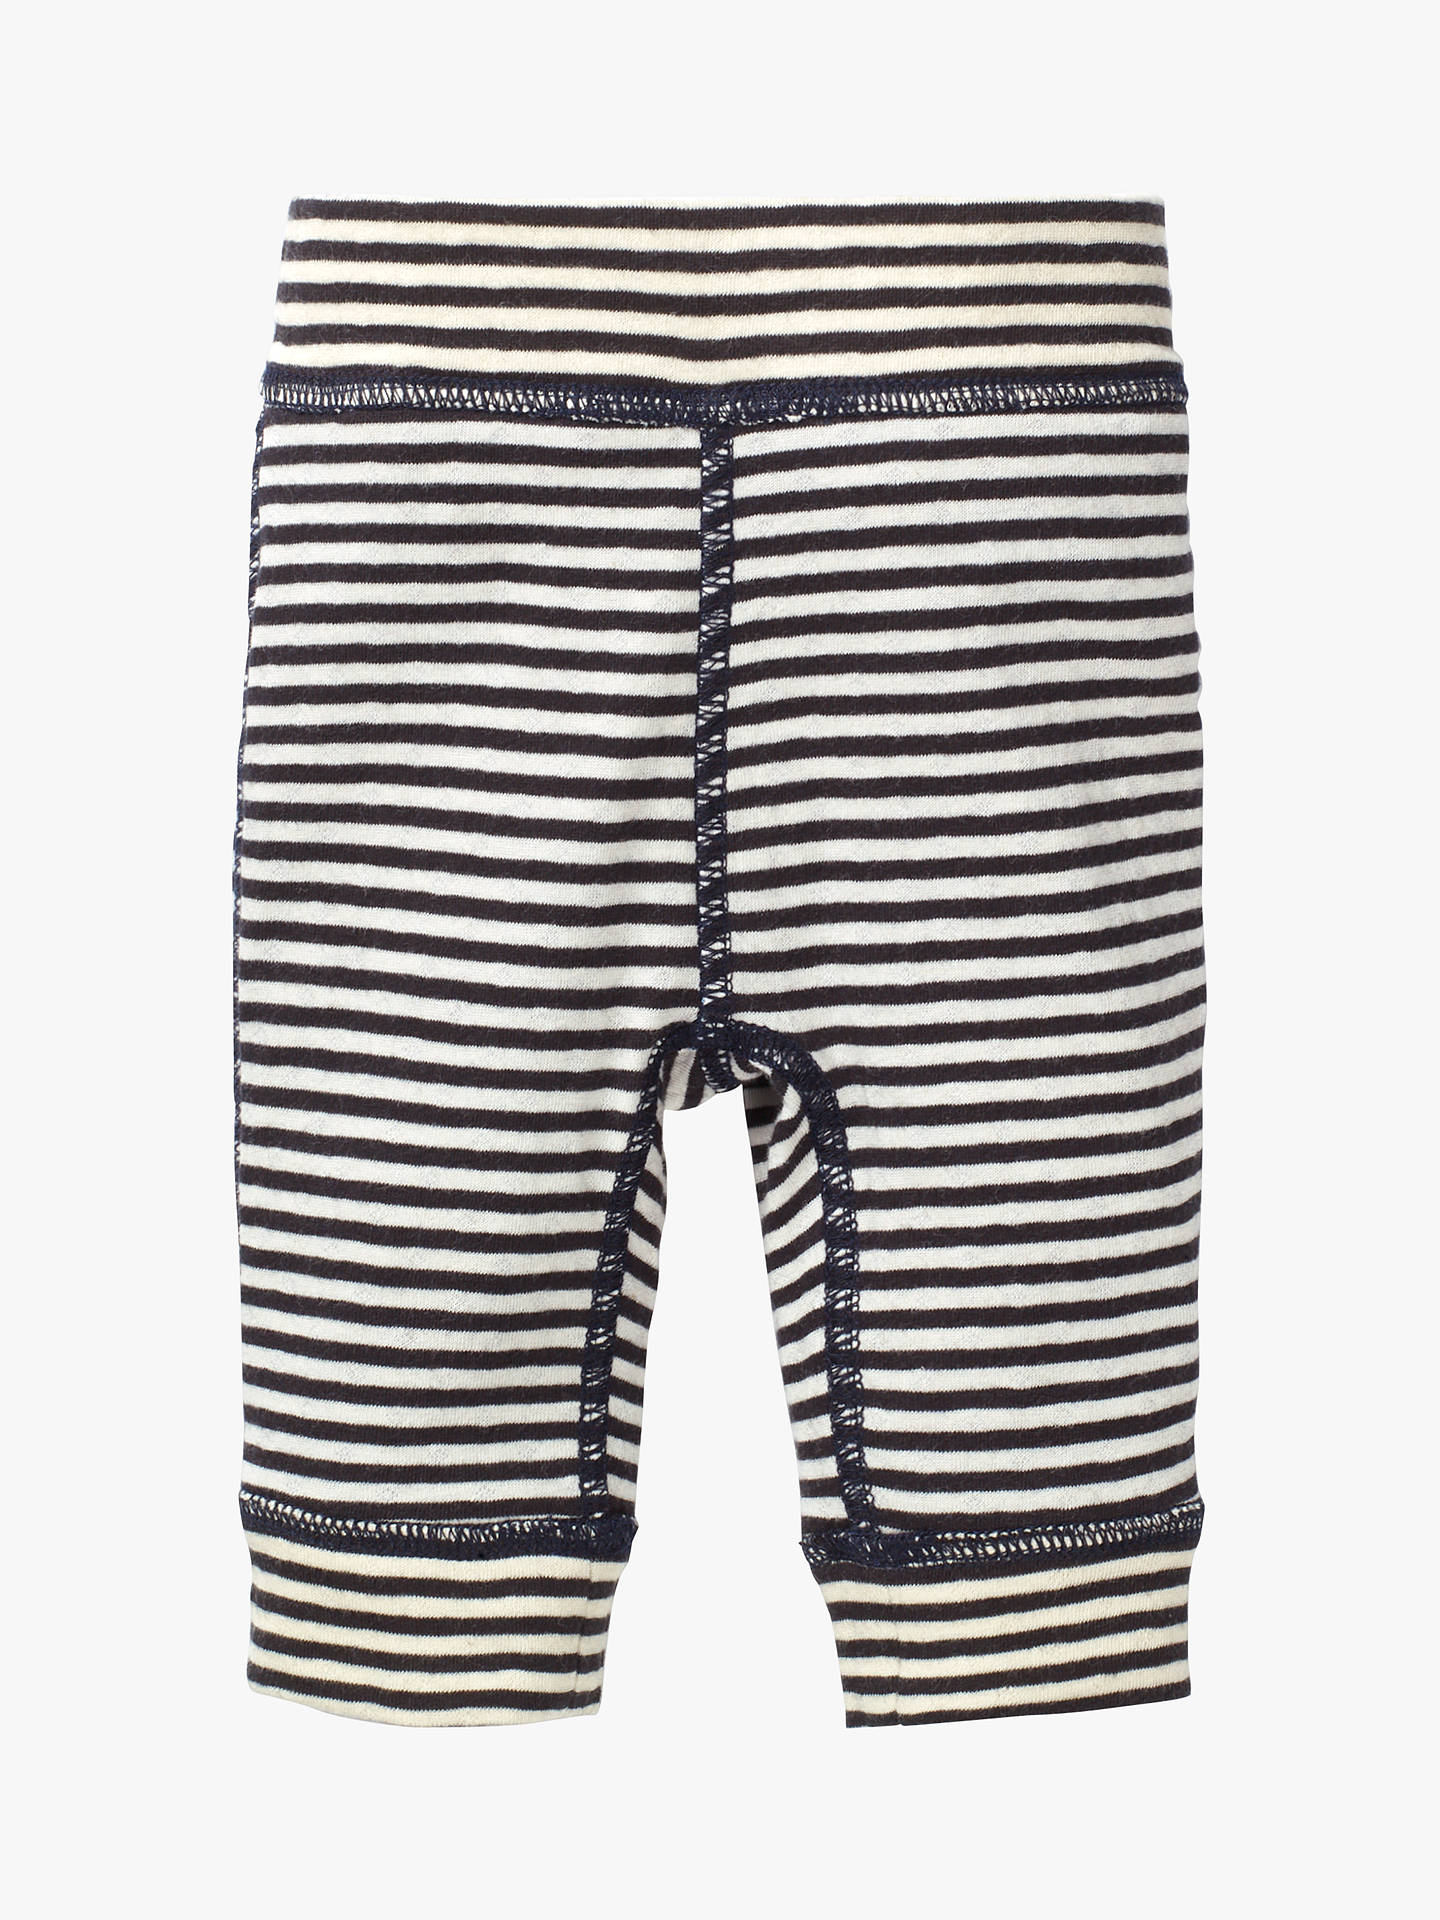 Mini boden boys shorts trouser baby 0 3 6 12 18 24 months 2 3 4 y blue stripe